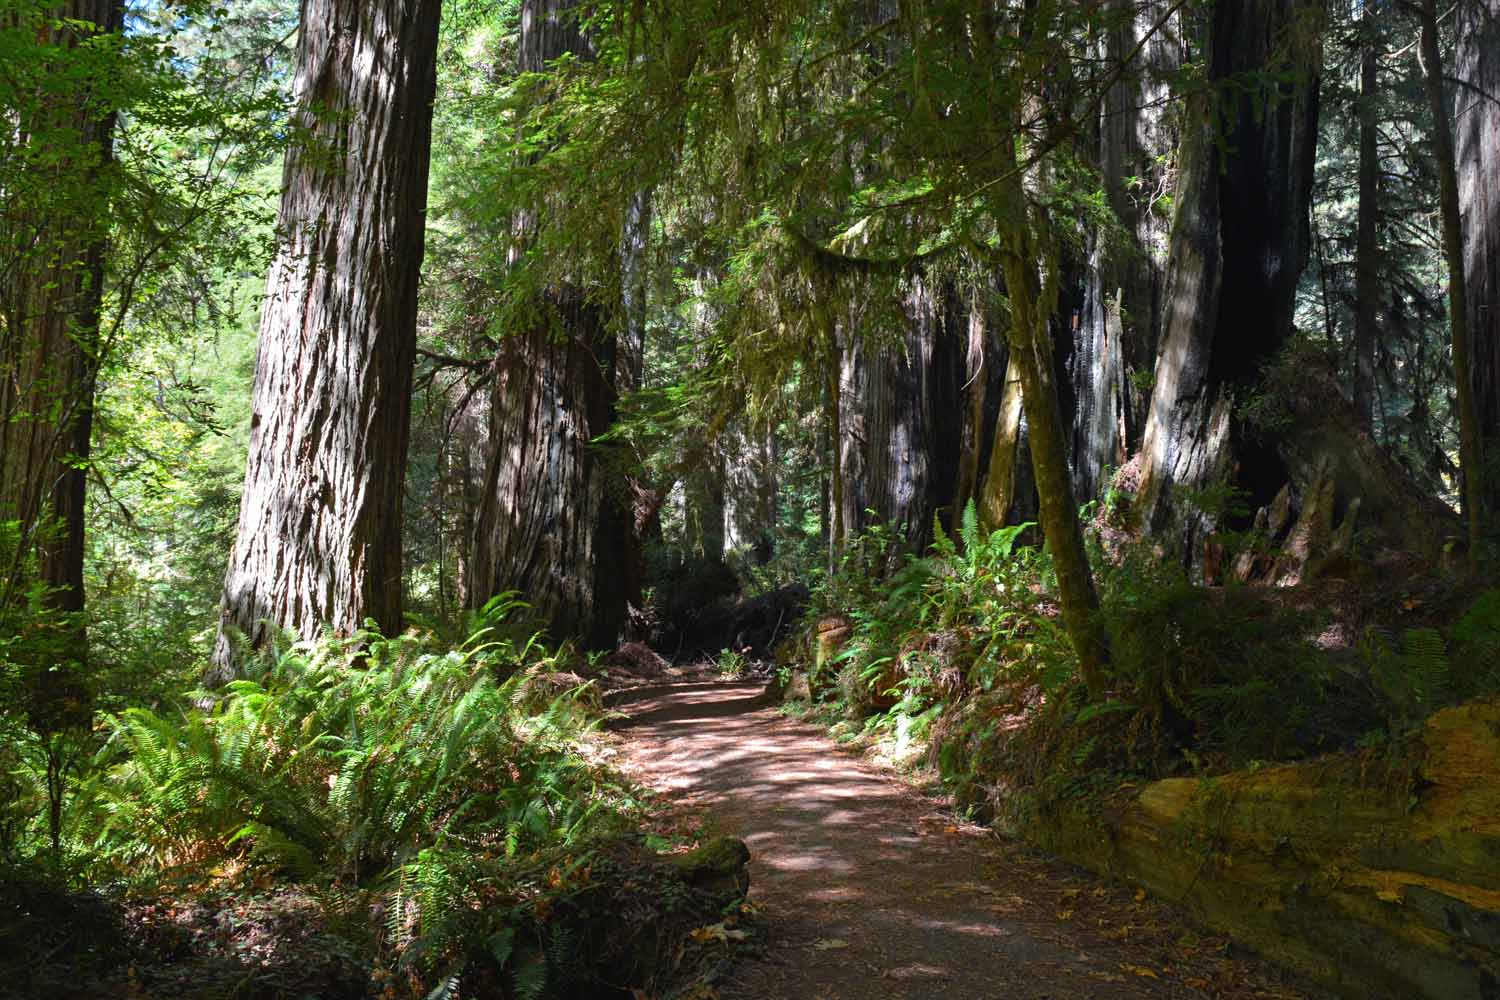 This trail is in the Jedediah Smith Redwoods State Park which in the Northern section.  Great RV park by the way.  The feeling here is one of being in a cathedral.  Our other hikes were in the Prairie Creek area which is more central.    Inland and to the south there is more Redwoods National Park but we did not make it that far. Getting around in this park requires a lot of driving.